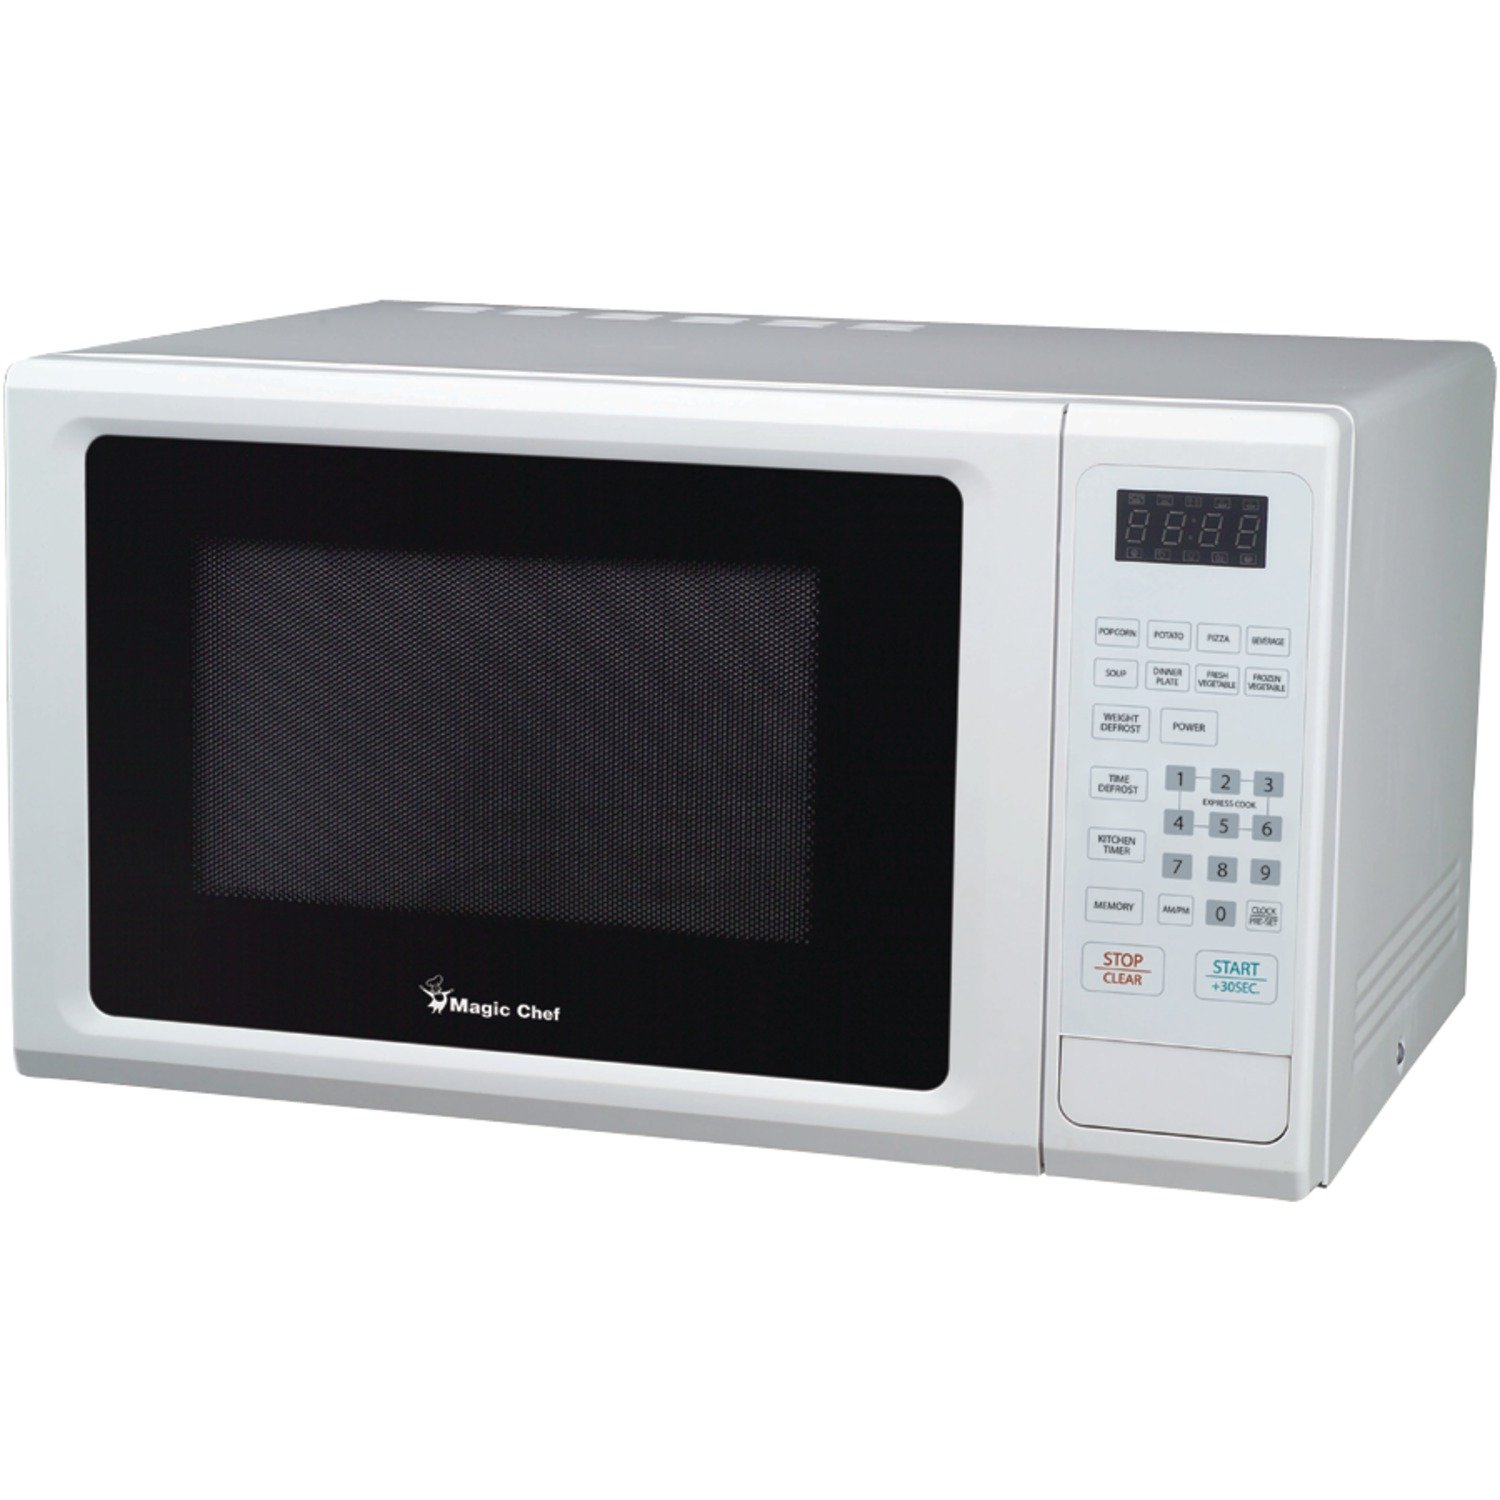 Magic Chef 1.1 cu ft Microwave, 10 power levels 8 auto cook menus (White)